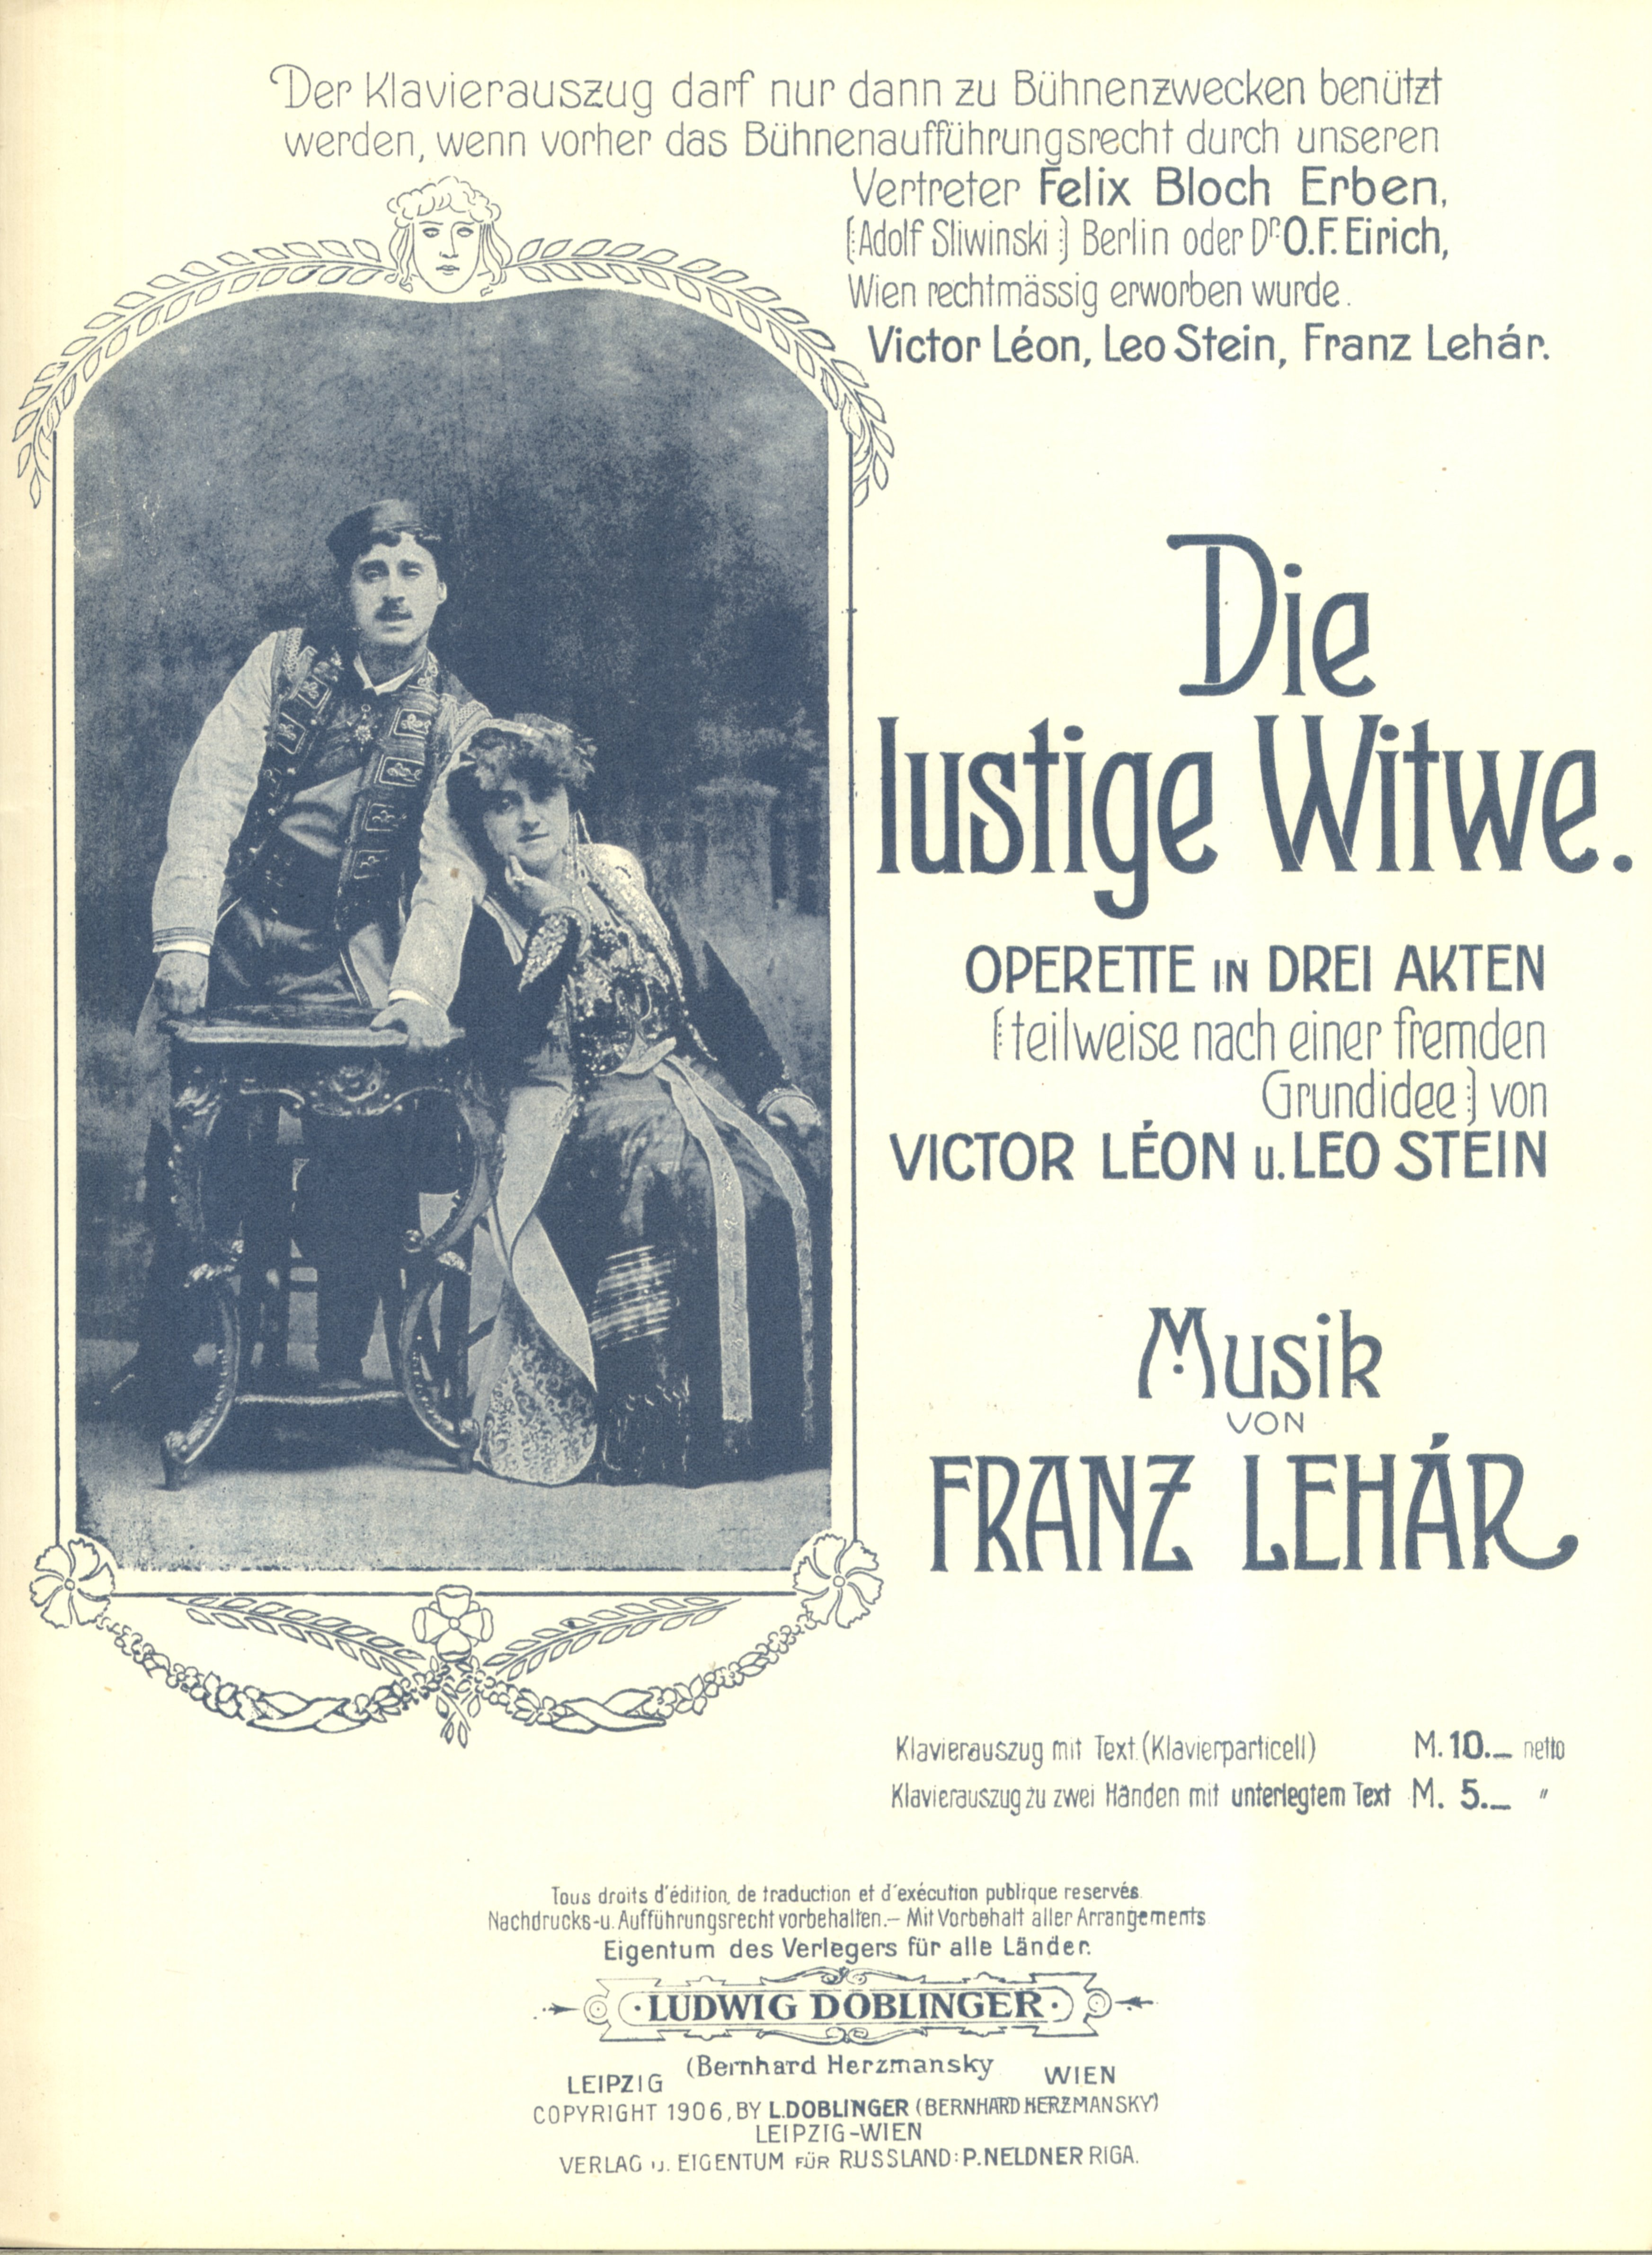 Louis Treumann and Mizzi Günther on the frontpage of a piano-vocal score, 1906